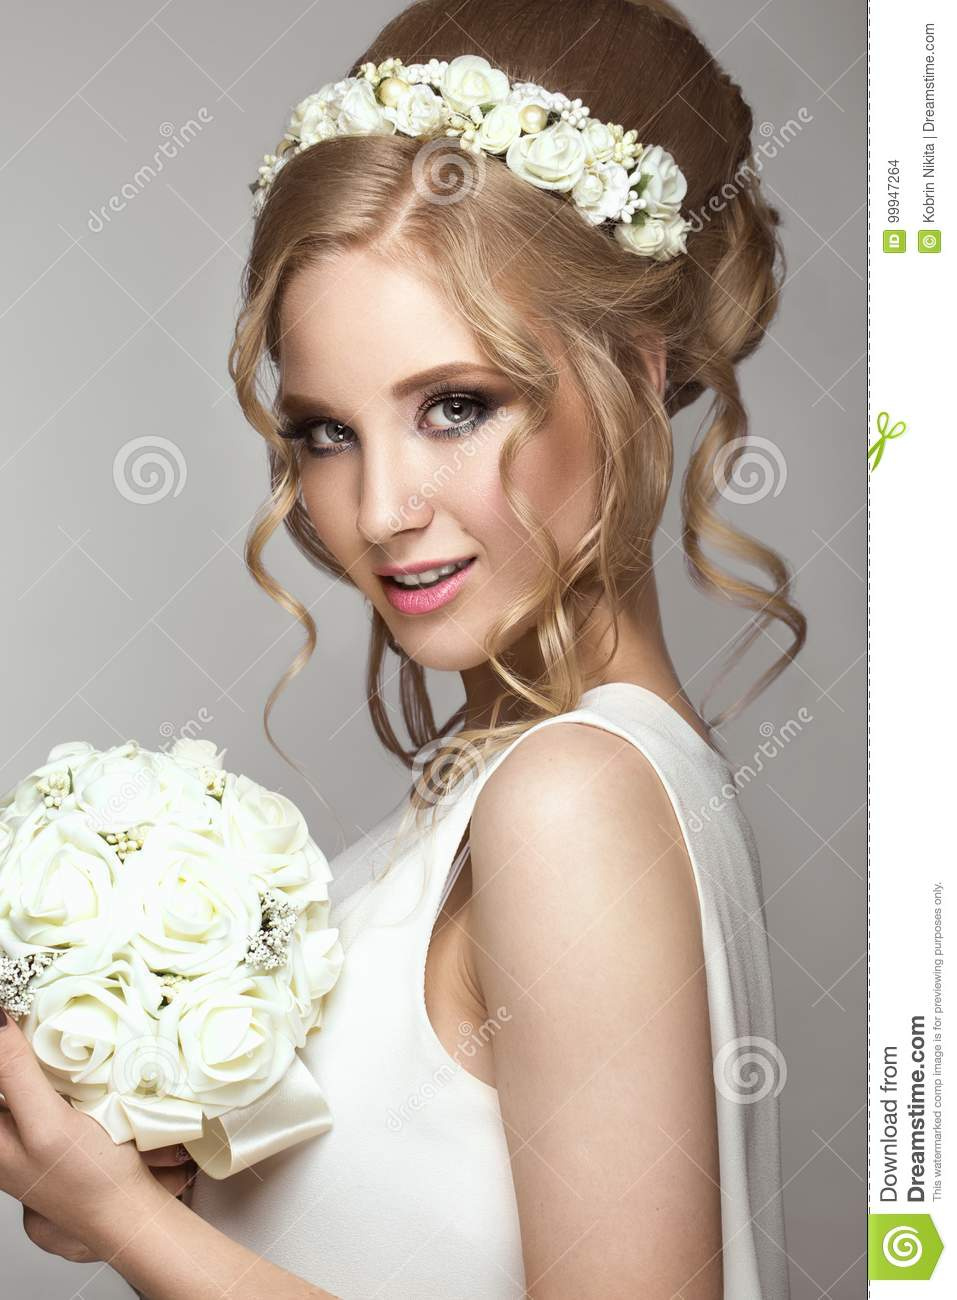 Beautiful blond girl in image of the bride with white flowers on her head. Beauty face.